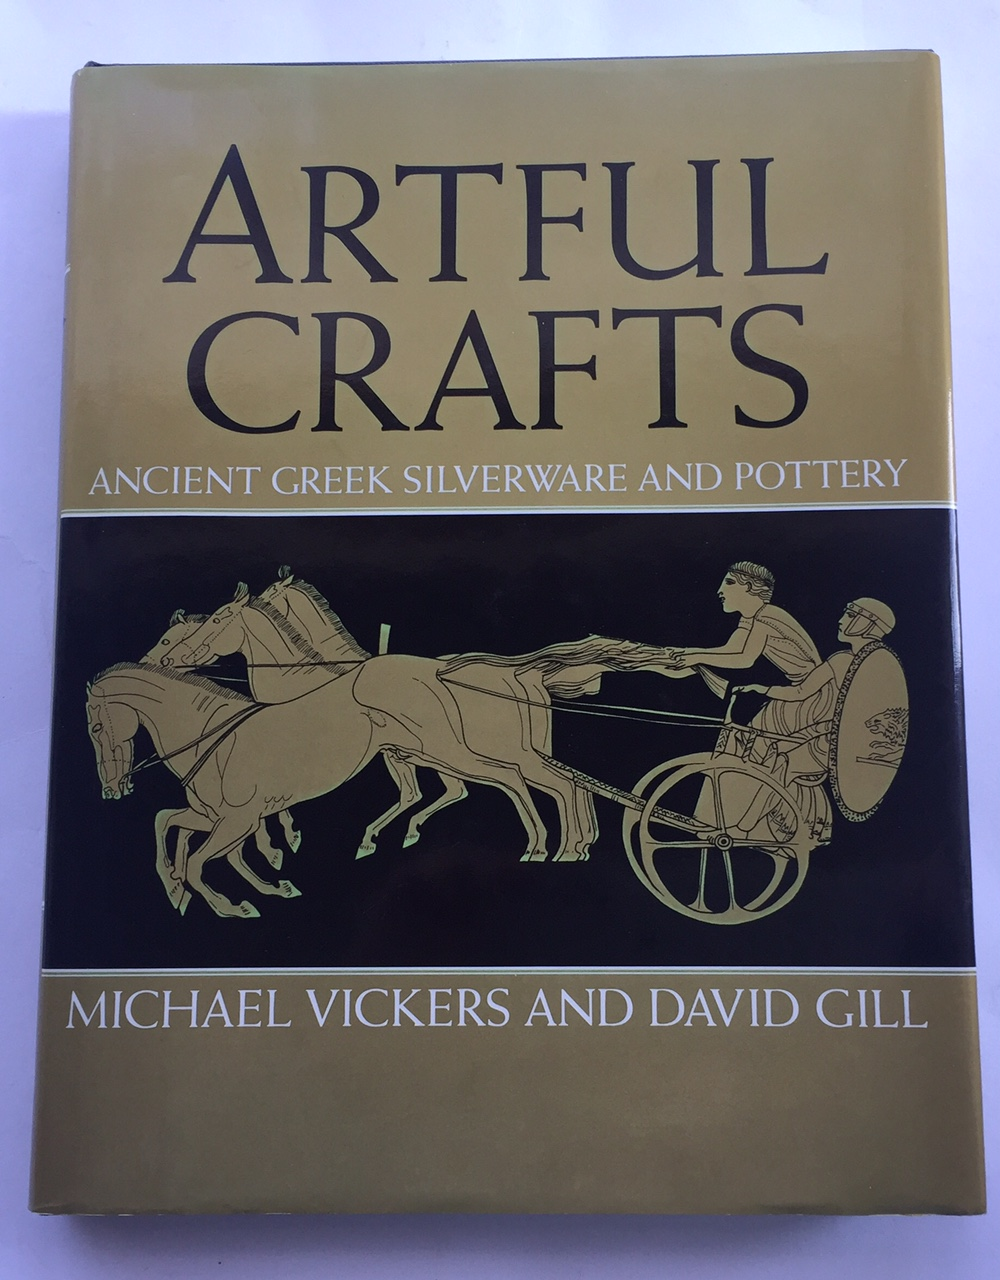 Artful Crafts :Ancient Greek Silverware and Pottery, Vickers, Michael ;